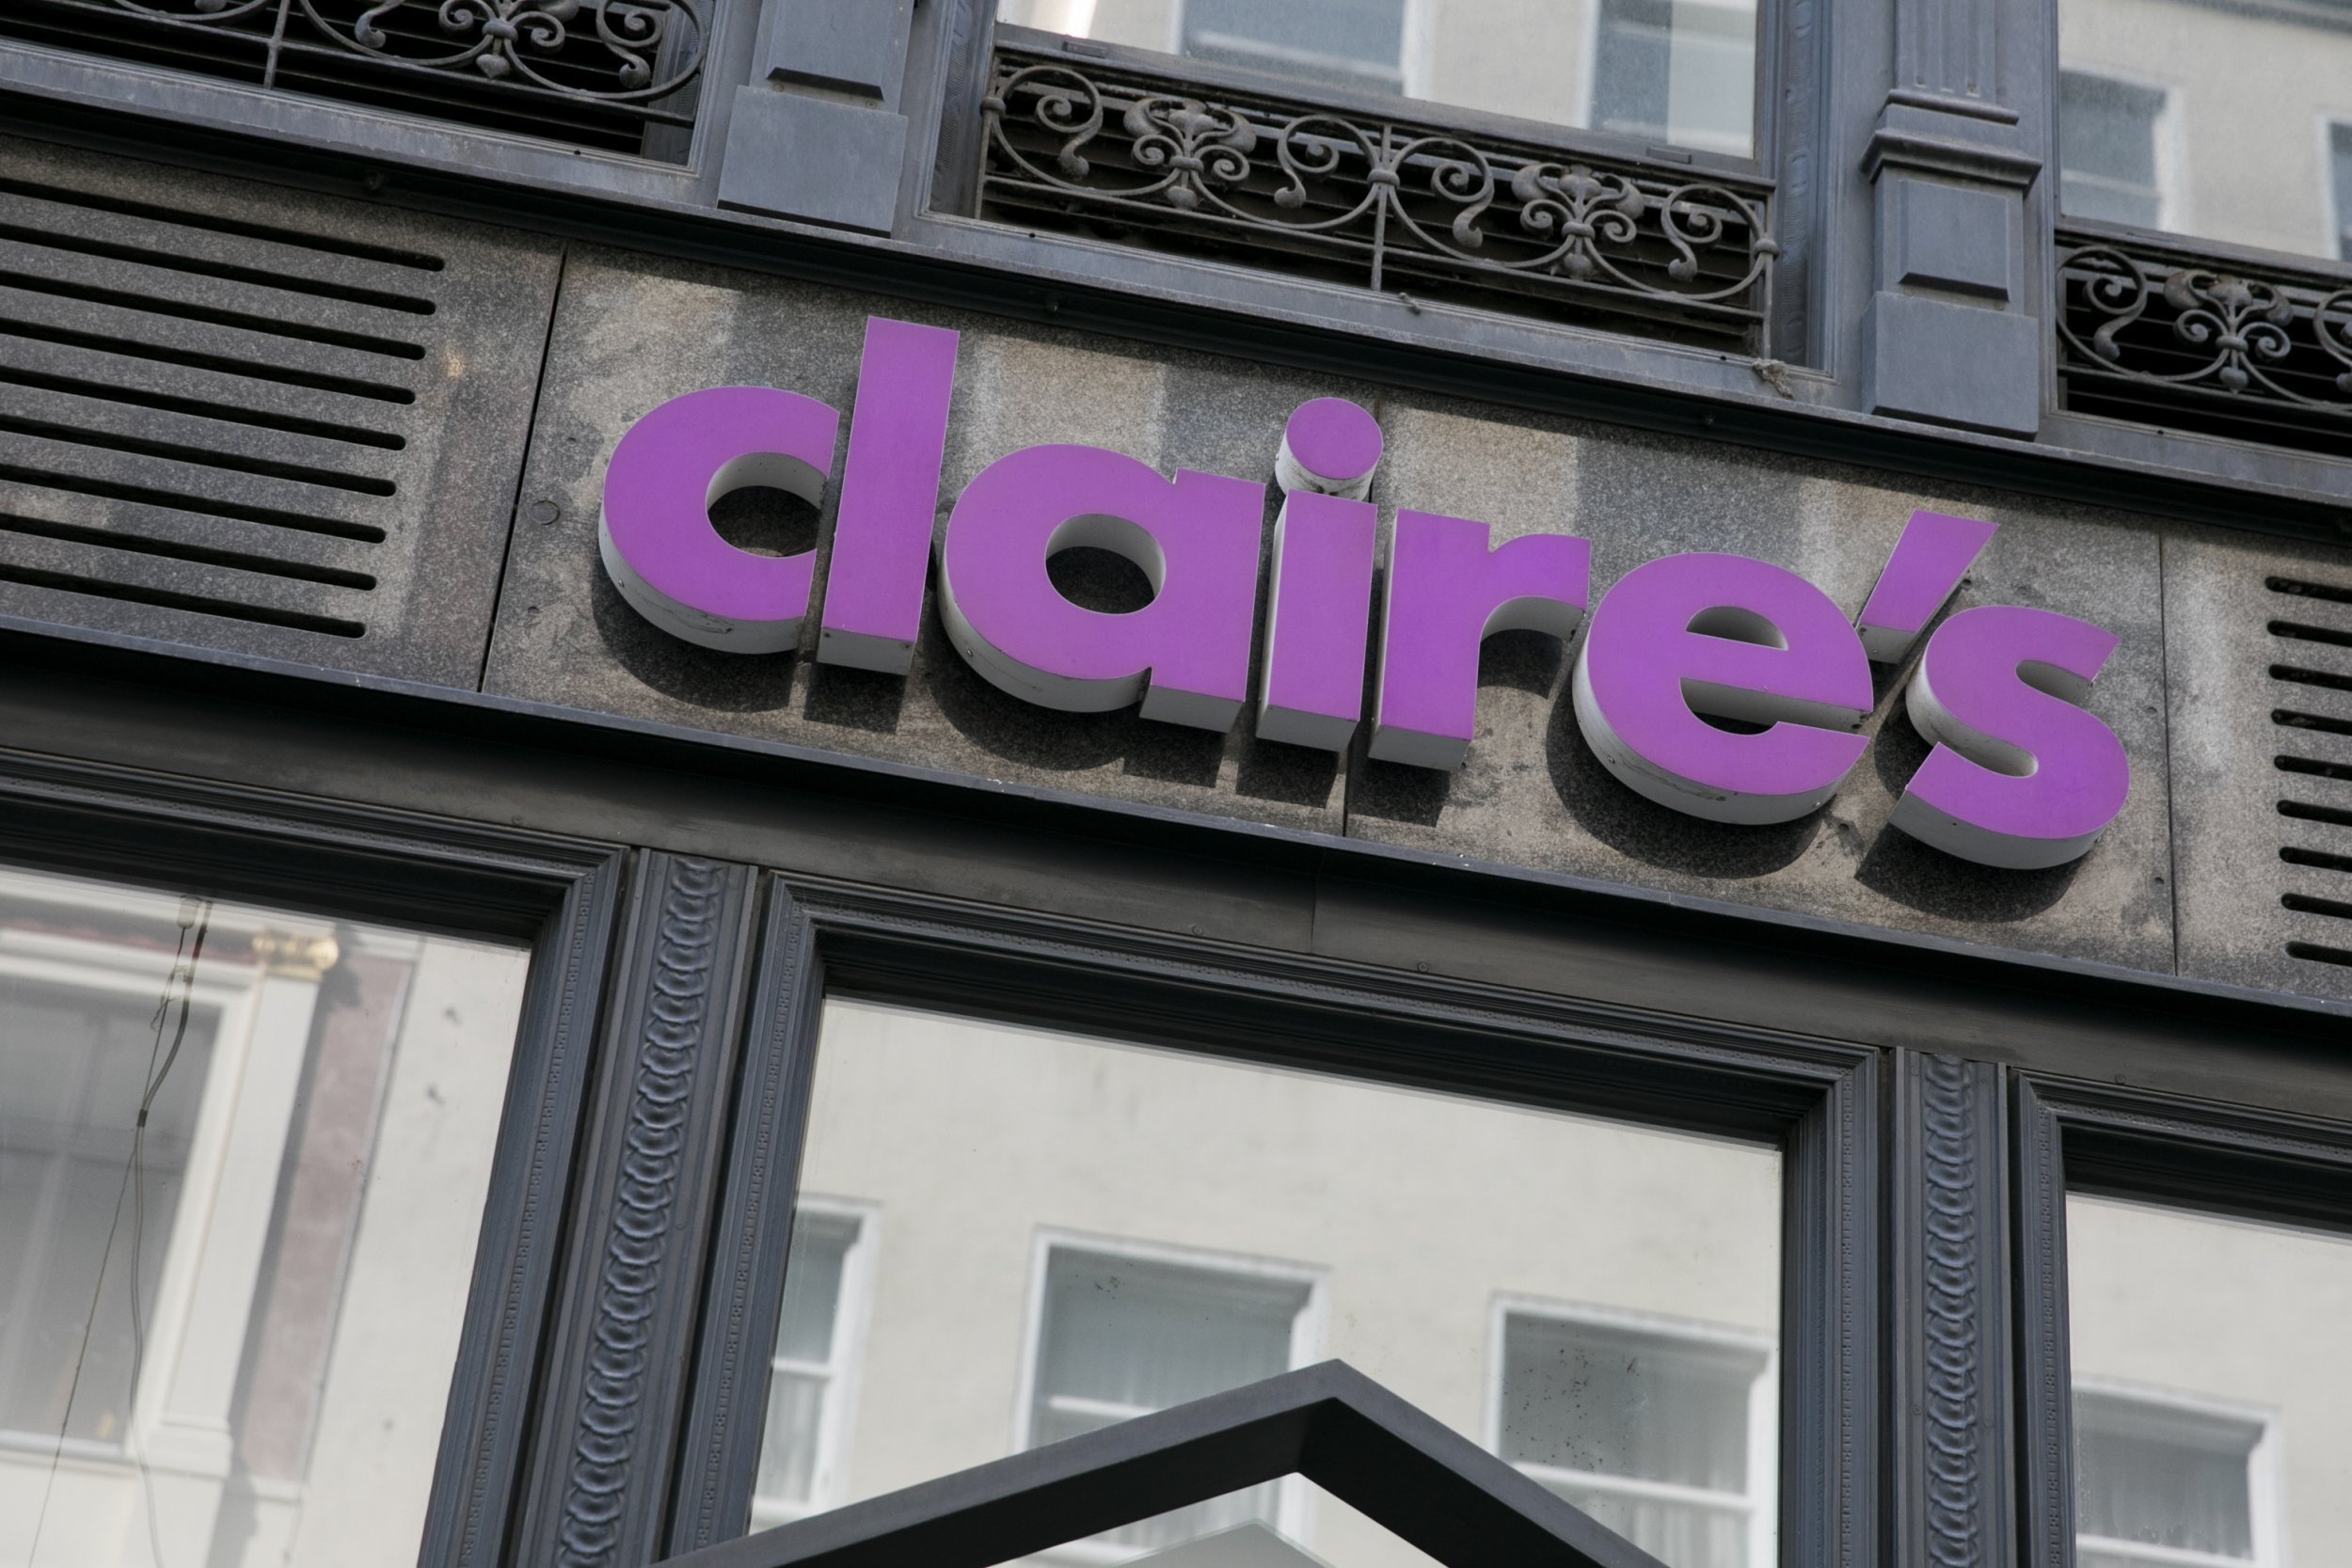 SIPA USA via PA Images A logo sign outside of a Claire's retail store in Vienna, Austria, on September 4, 2018. (Photo by Kristoffer Tripplaar/Sipa USA)